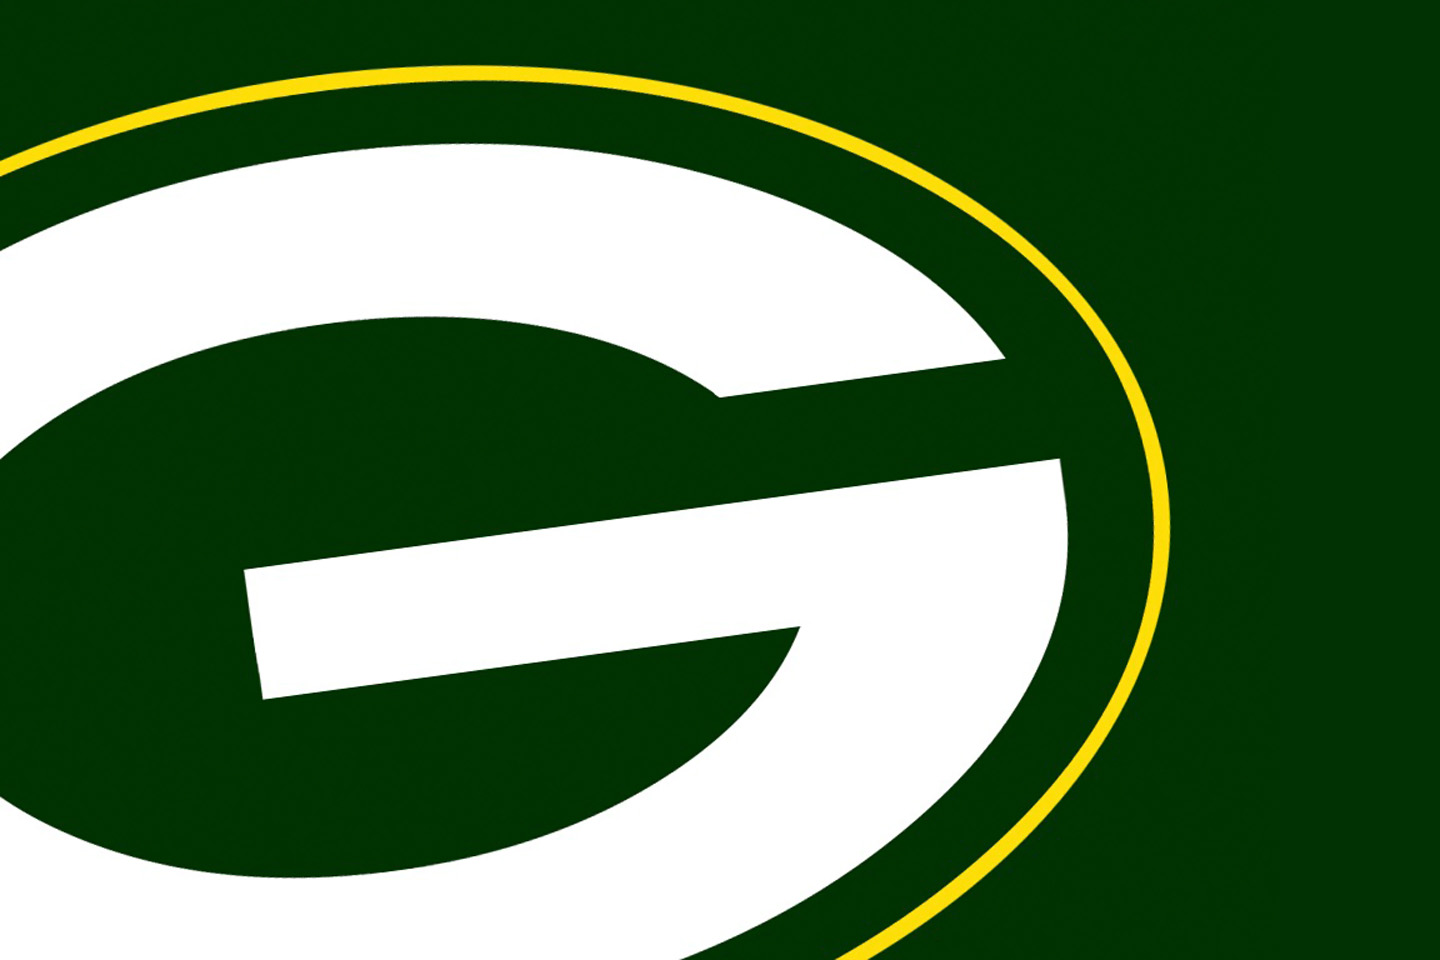 Clipart Green Bay Packers.